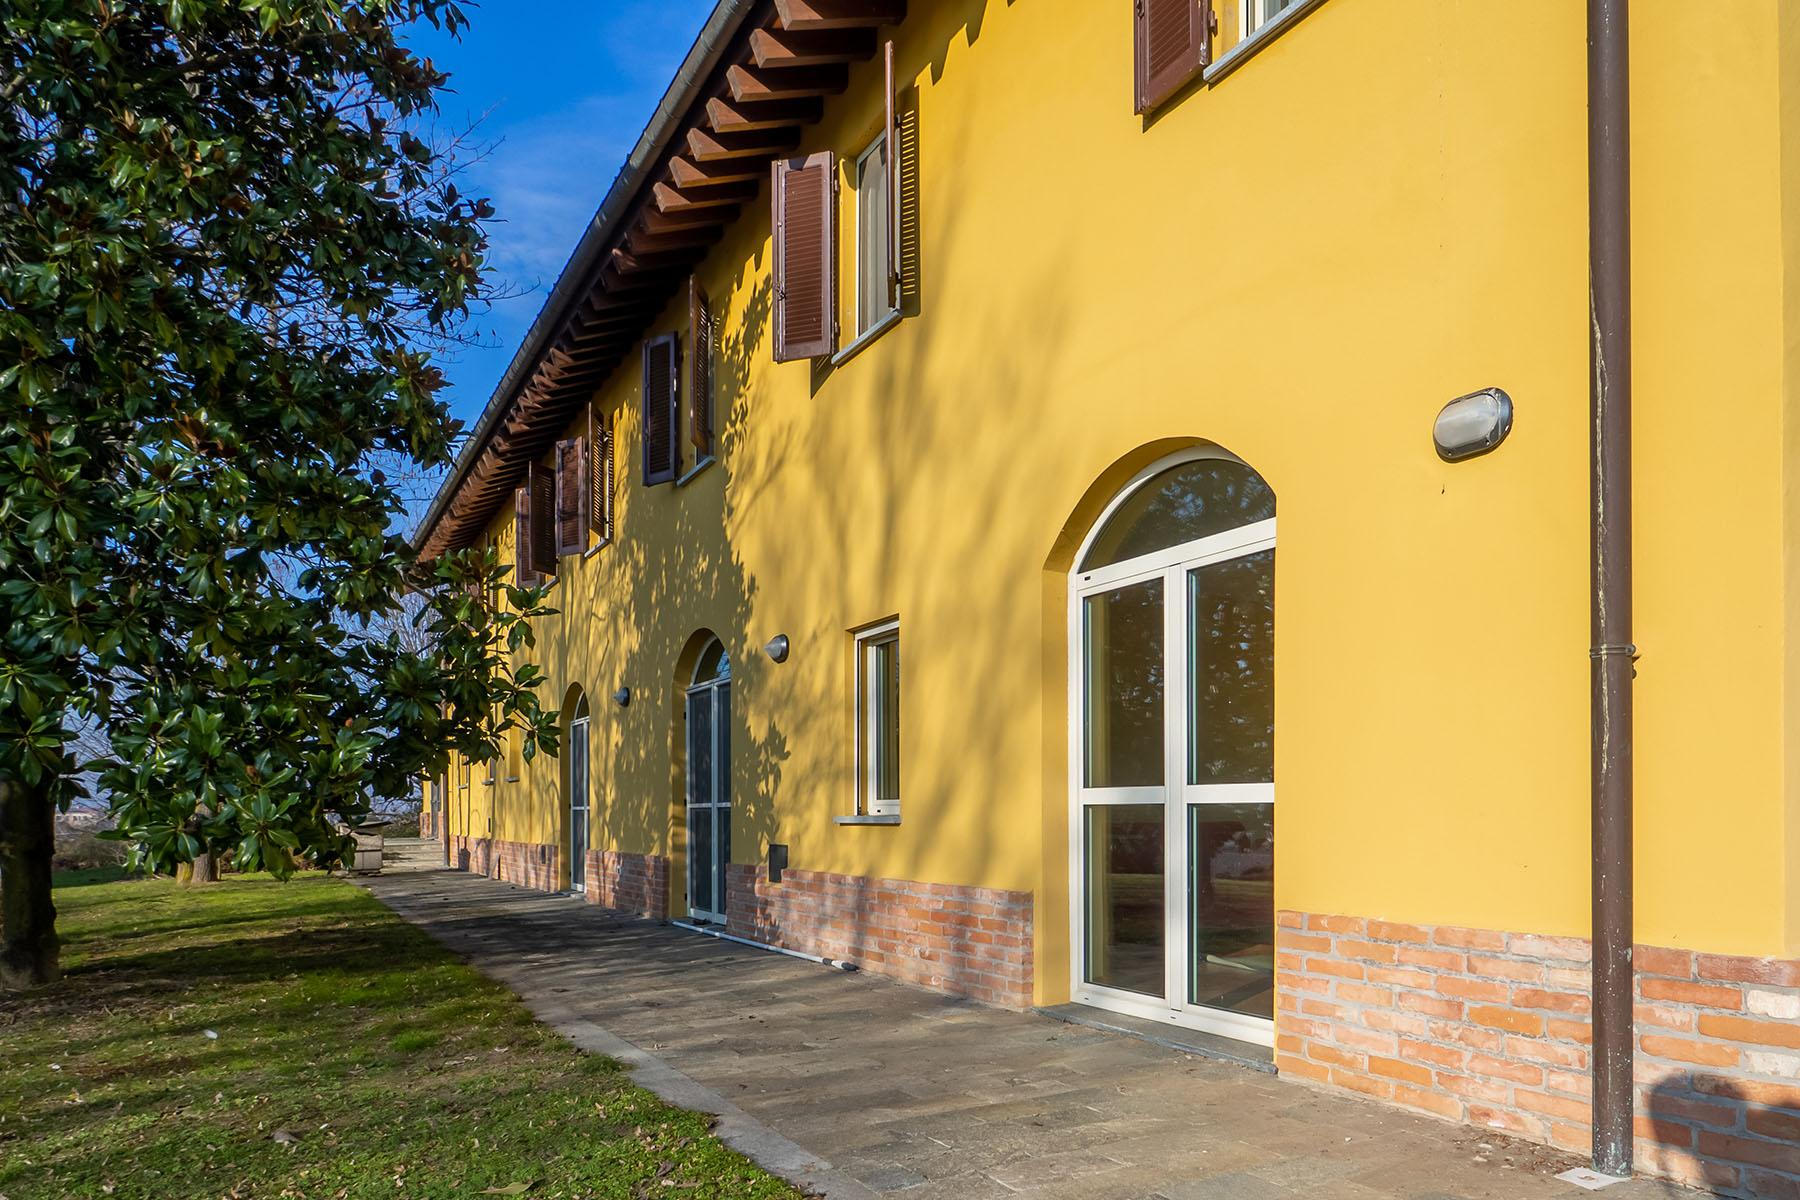 Magnificent Villa surrounded by the green hills of Monferrato - 30